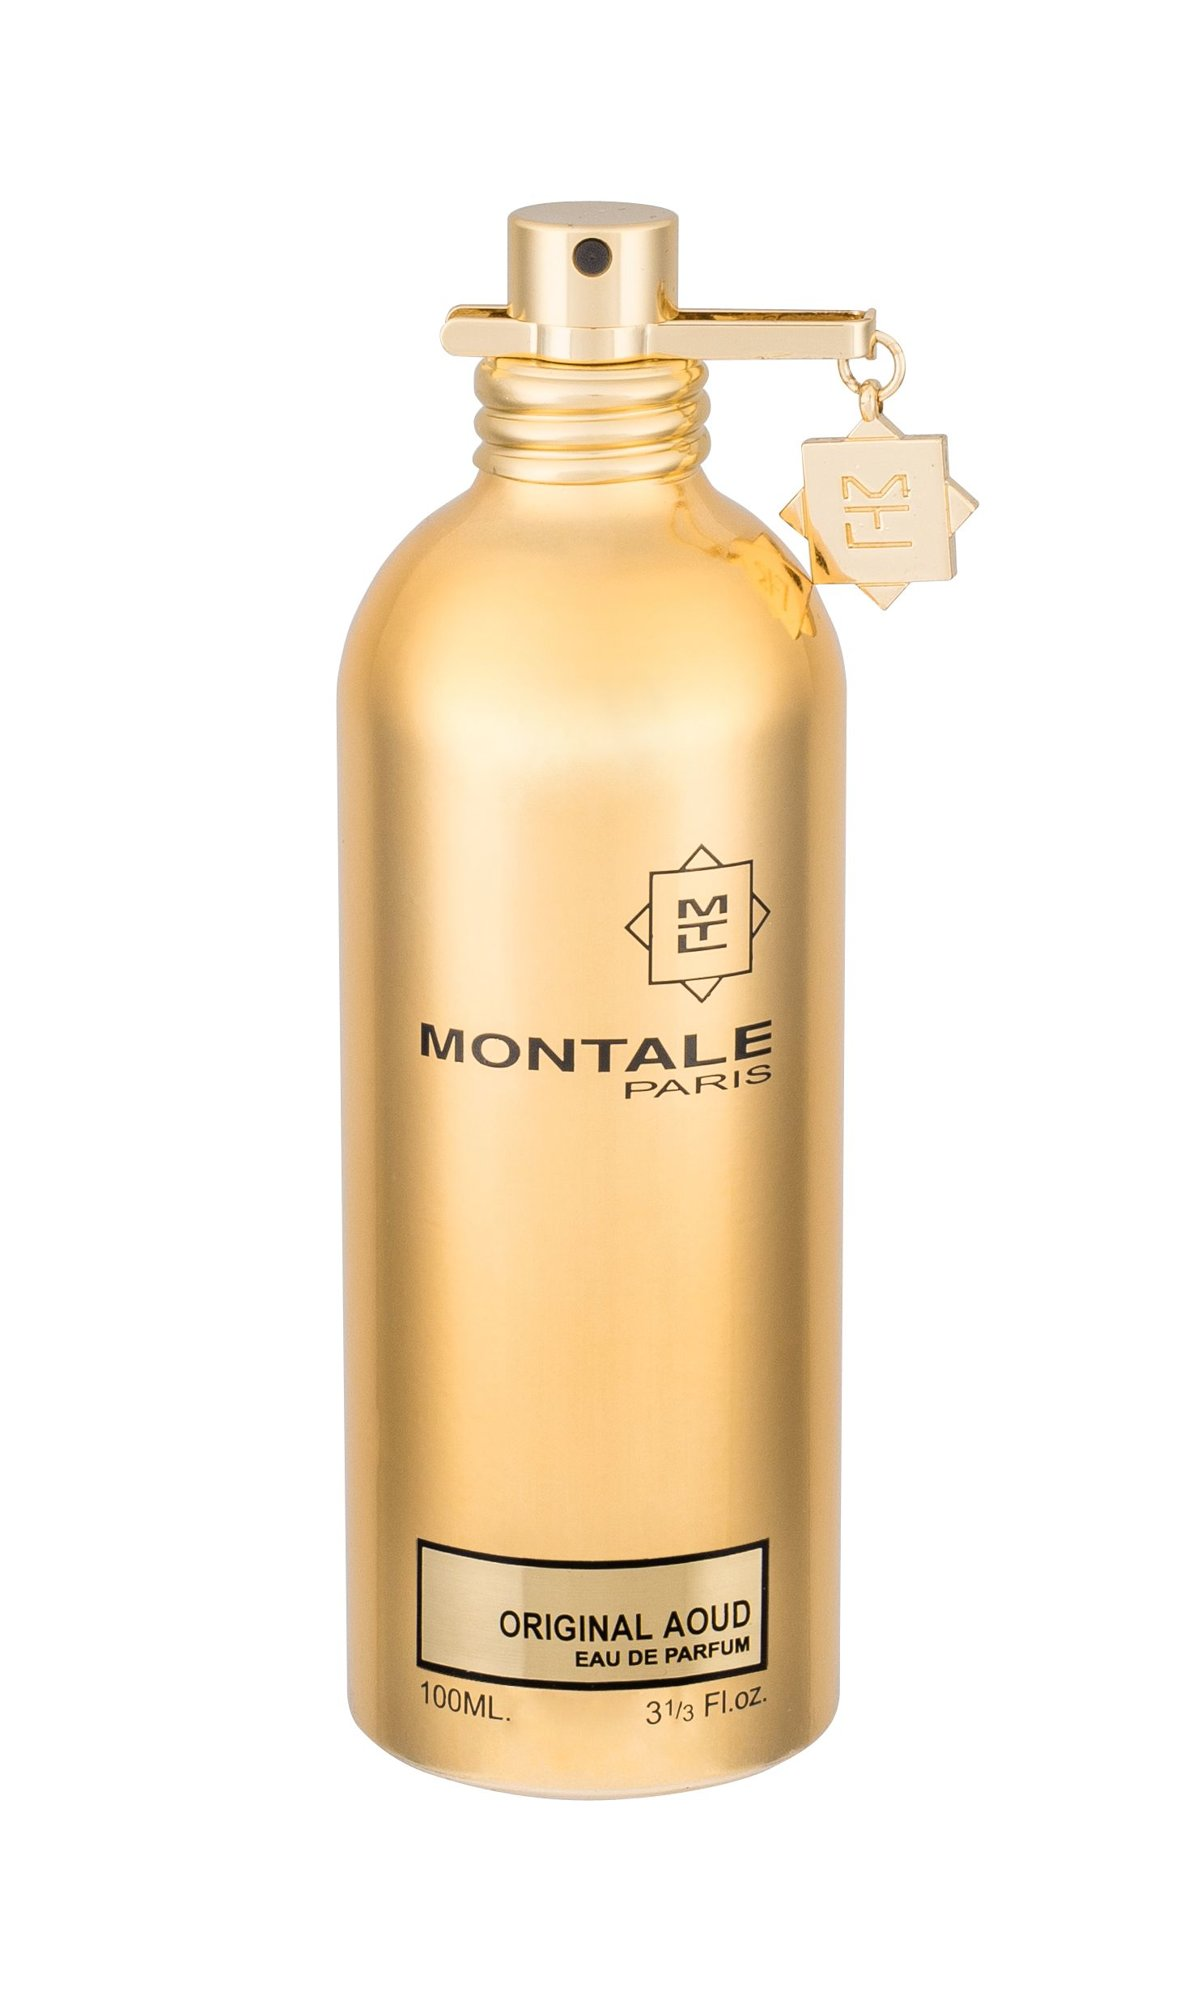 Montale Paris Original Aouds Eau de Parfum 100ml